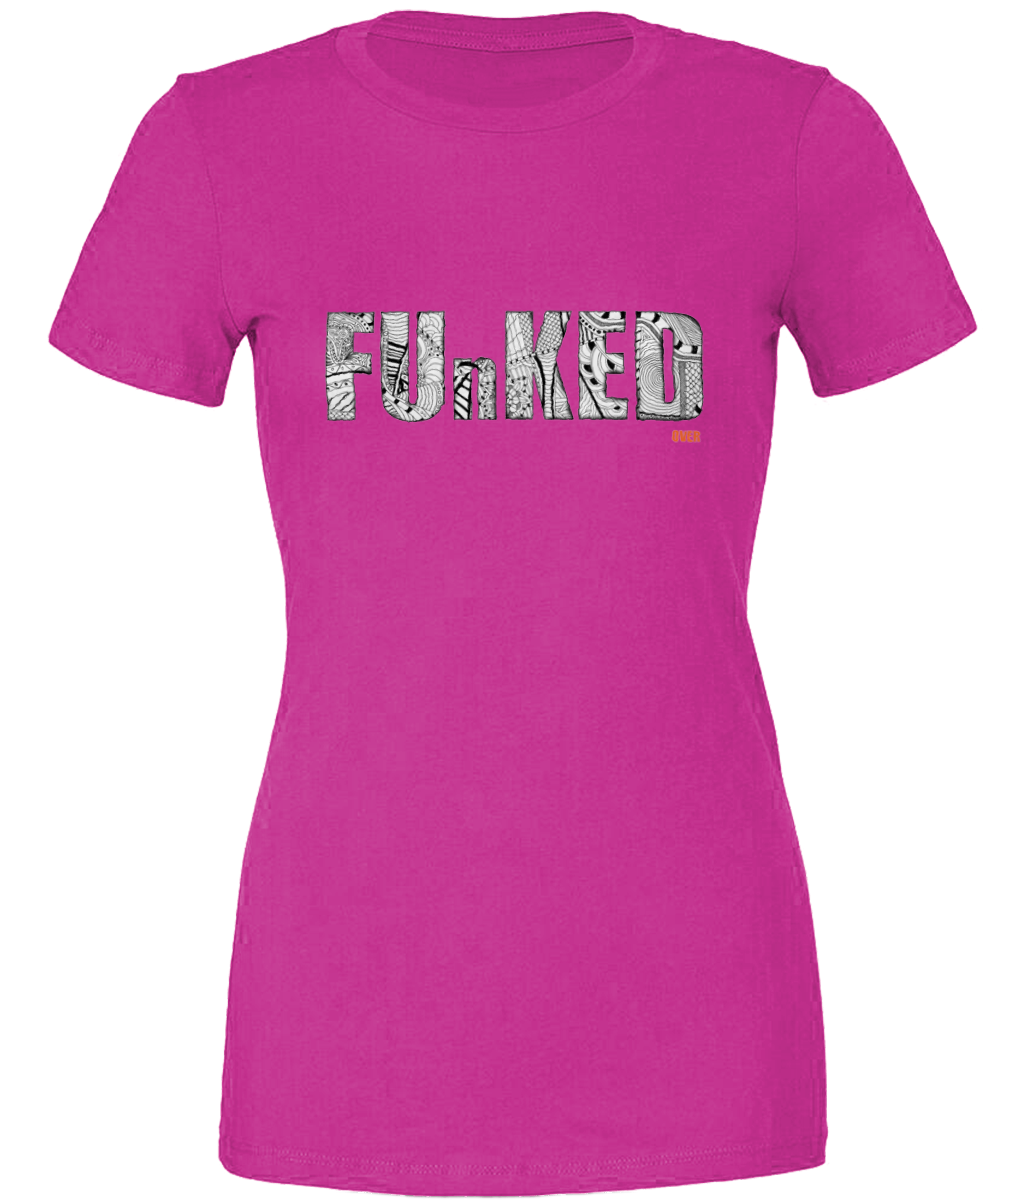 Funked Over Ladies T-Shirt - Berry